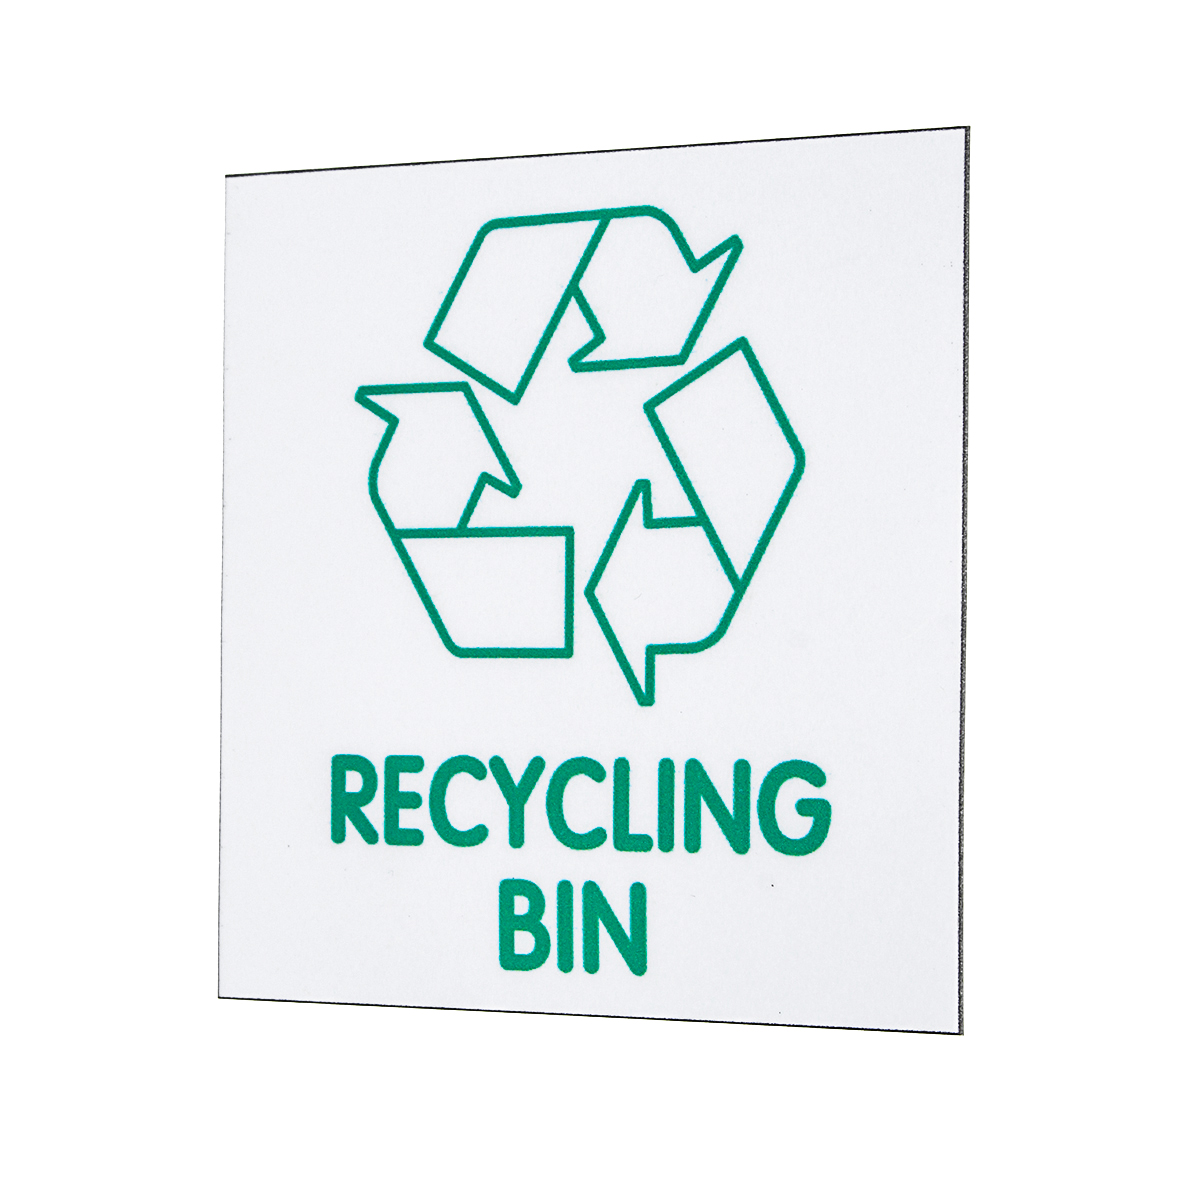 Recycle Logo 87x87mm Self-adhesive Recycling Bin Sign Sticker Environment Label Tape